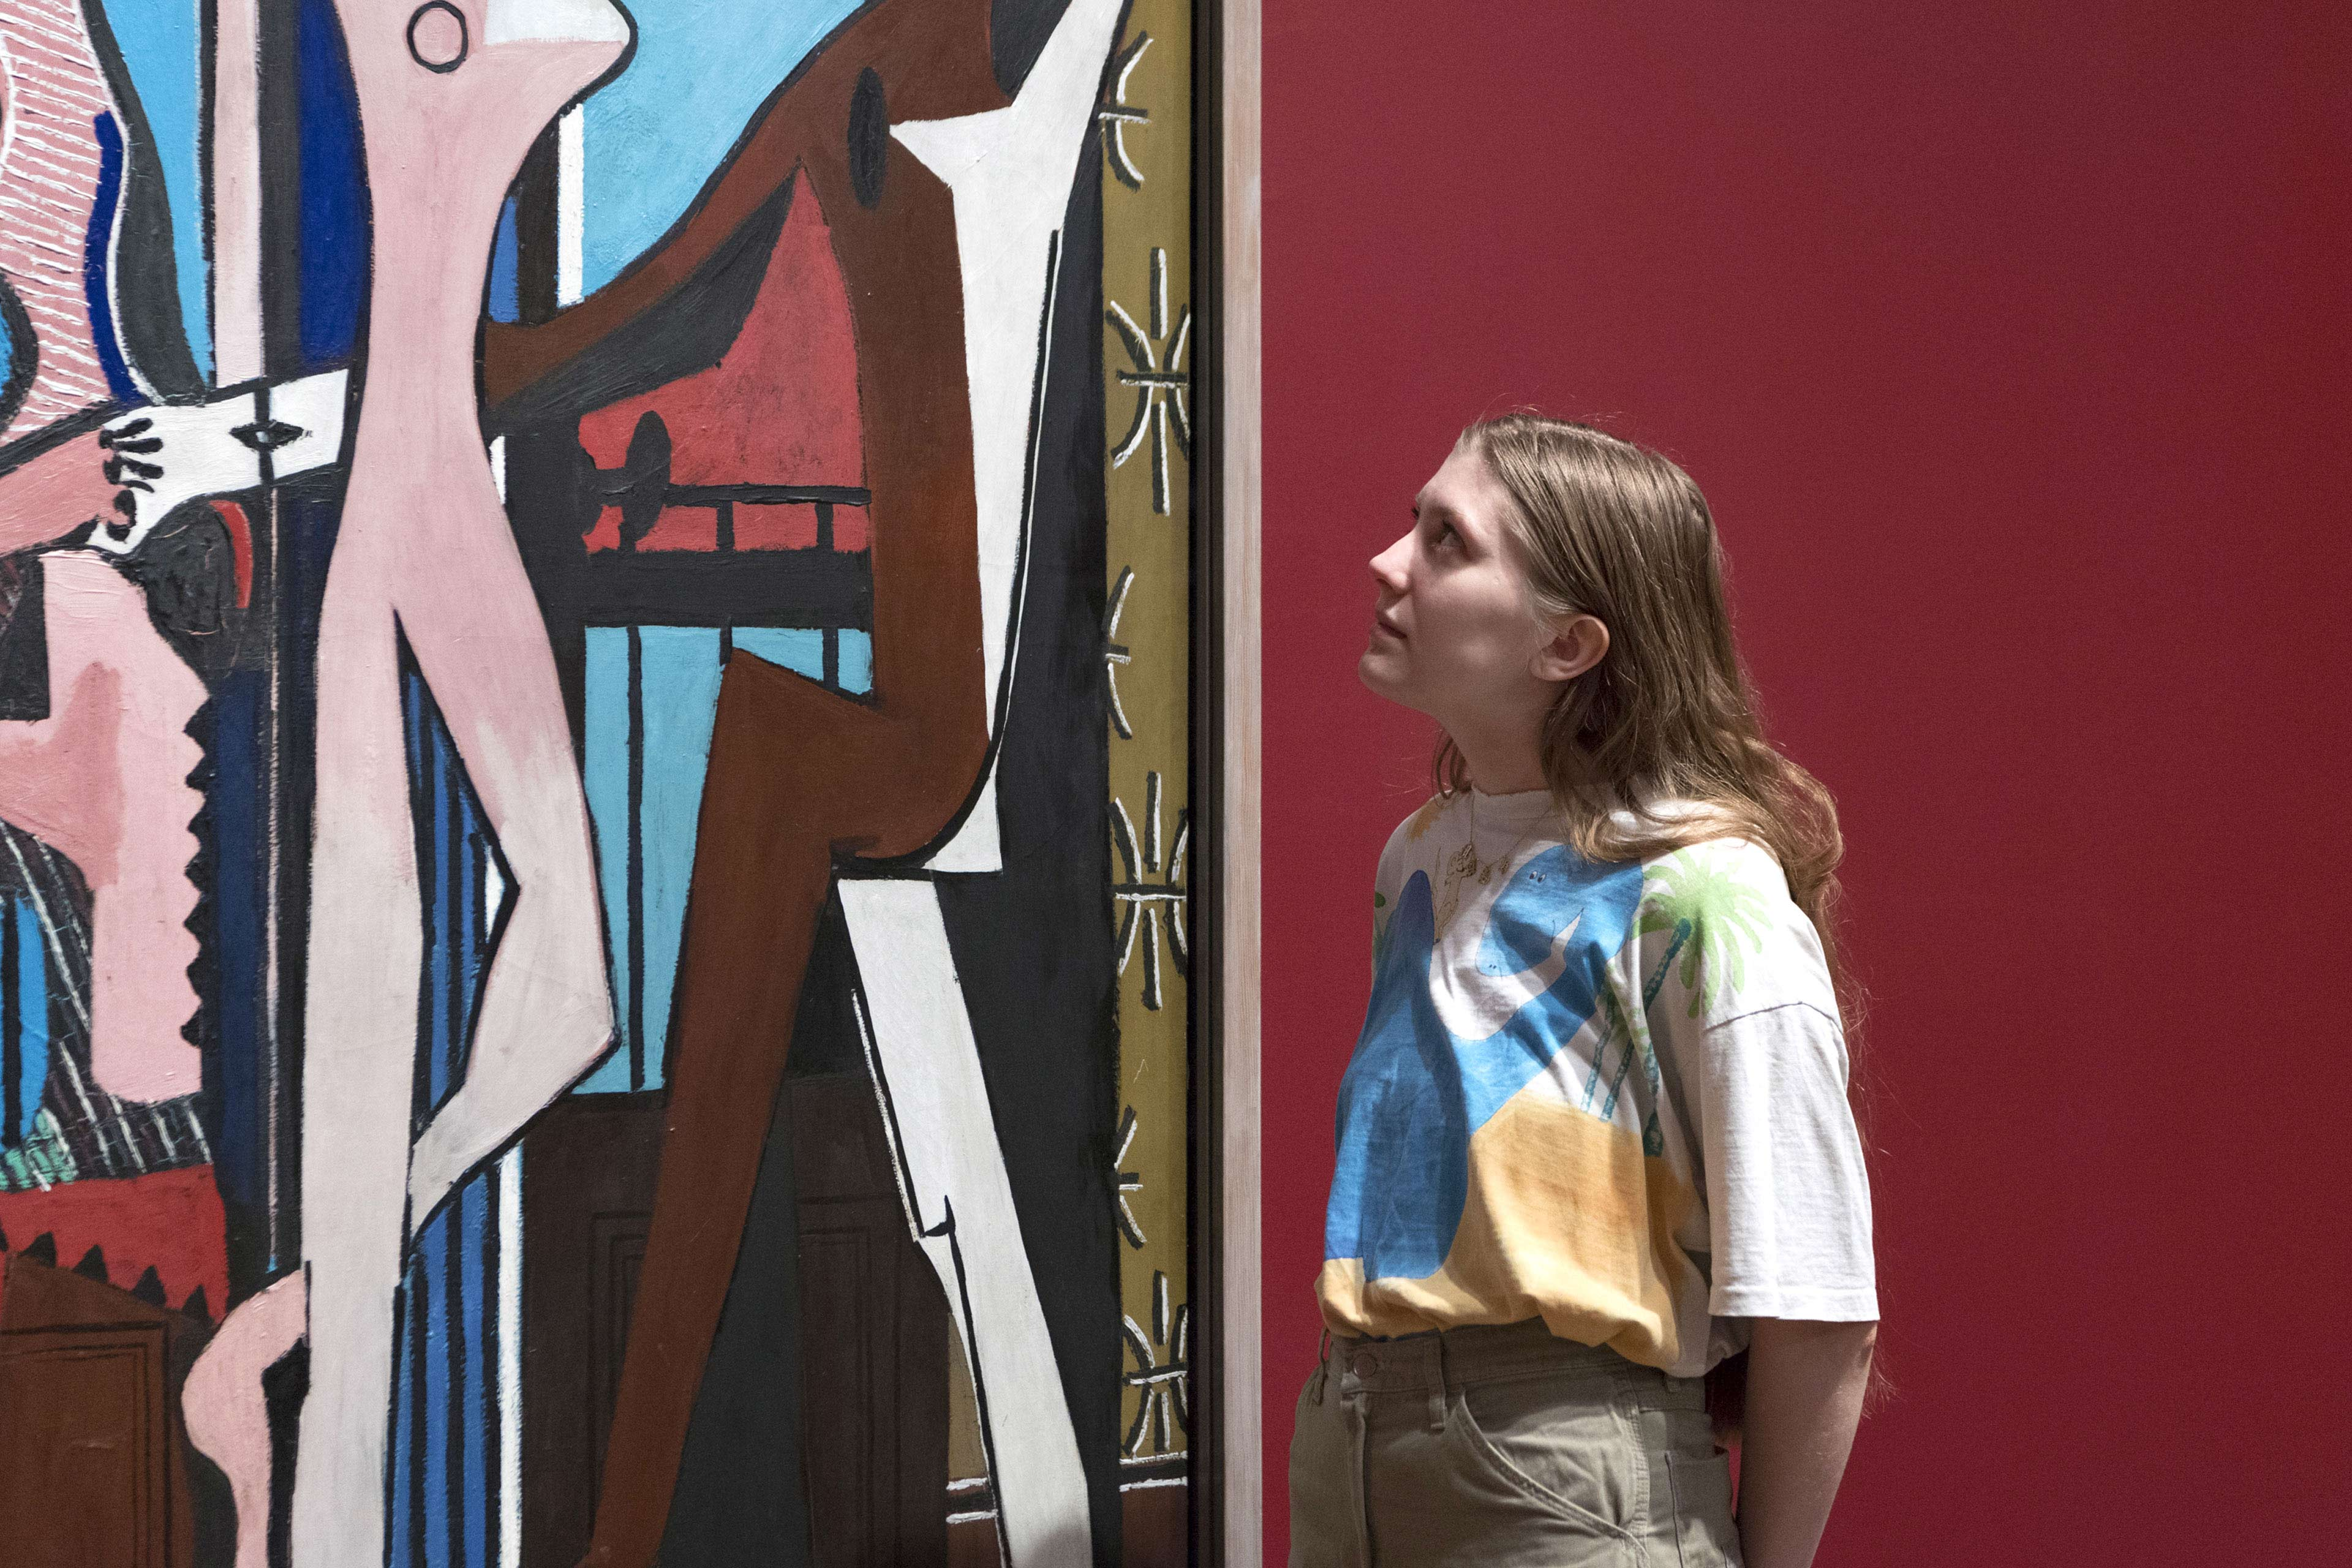 EY Woman Looking at a Painting by Picasso